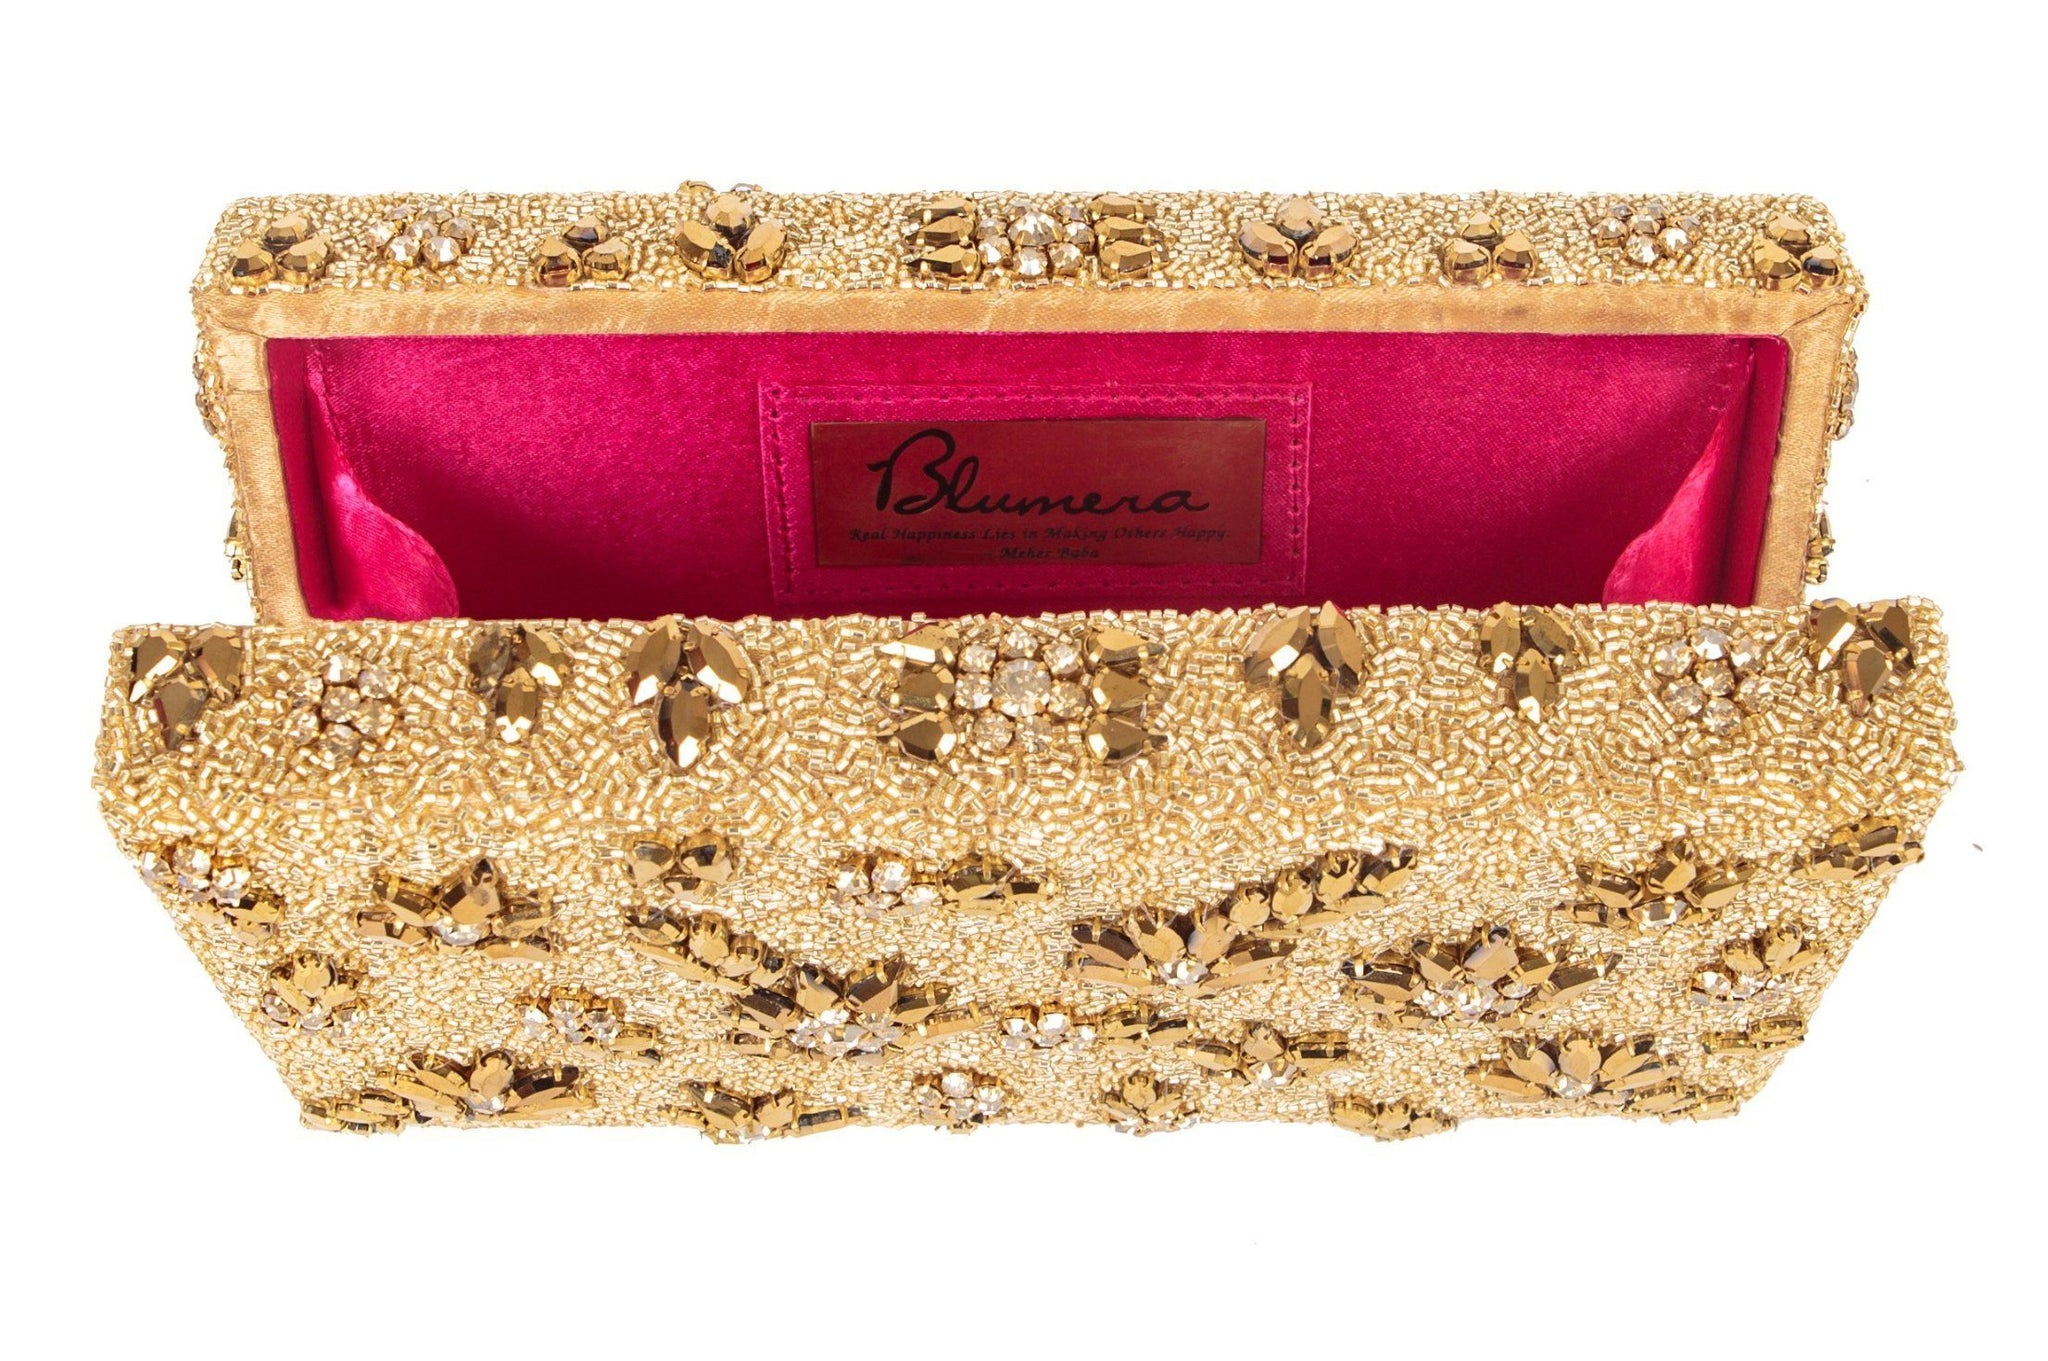 Shooting Star Crystal Encrusted Clutch - Matte Gold - Blumera